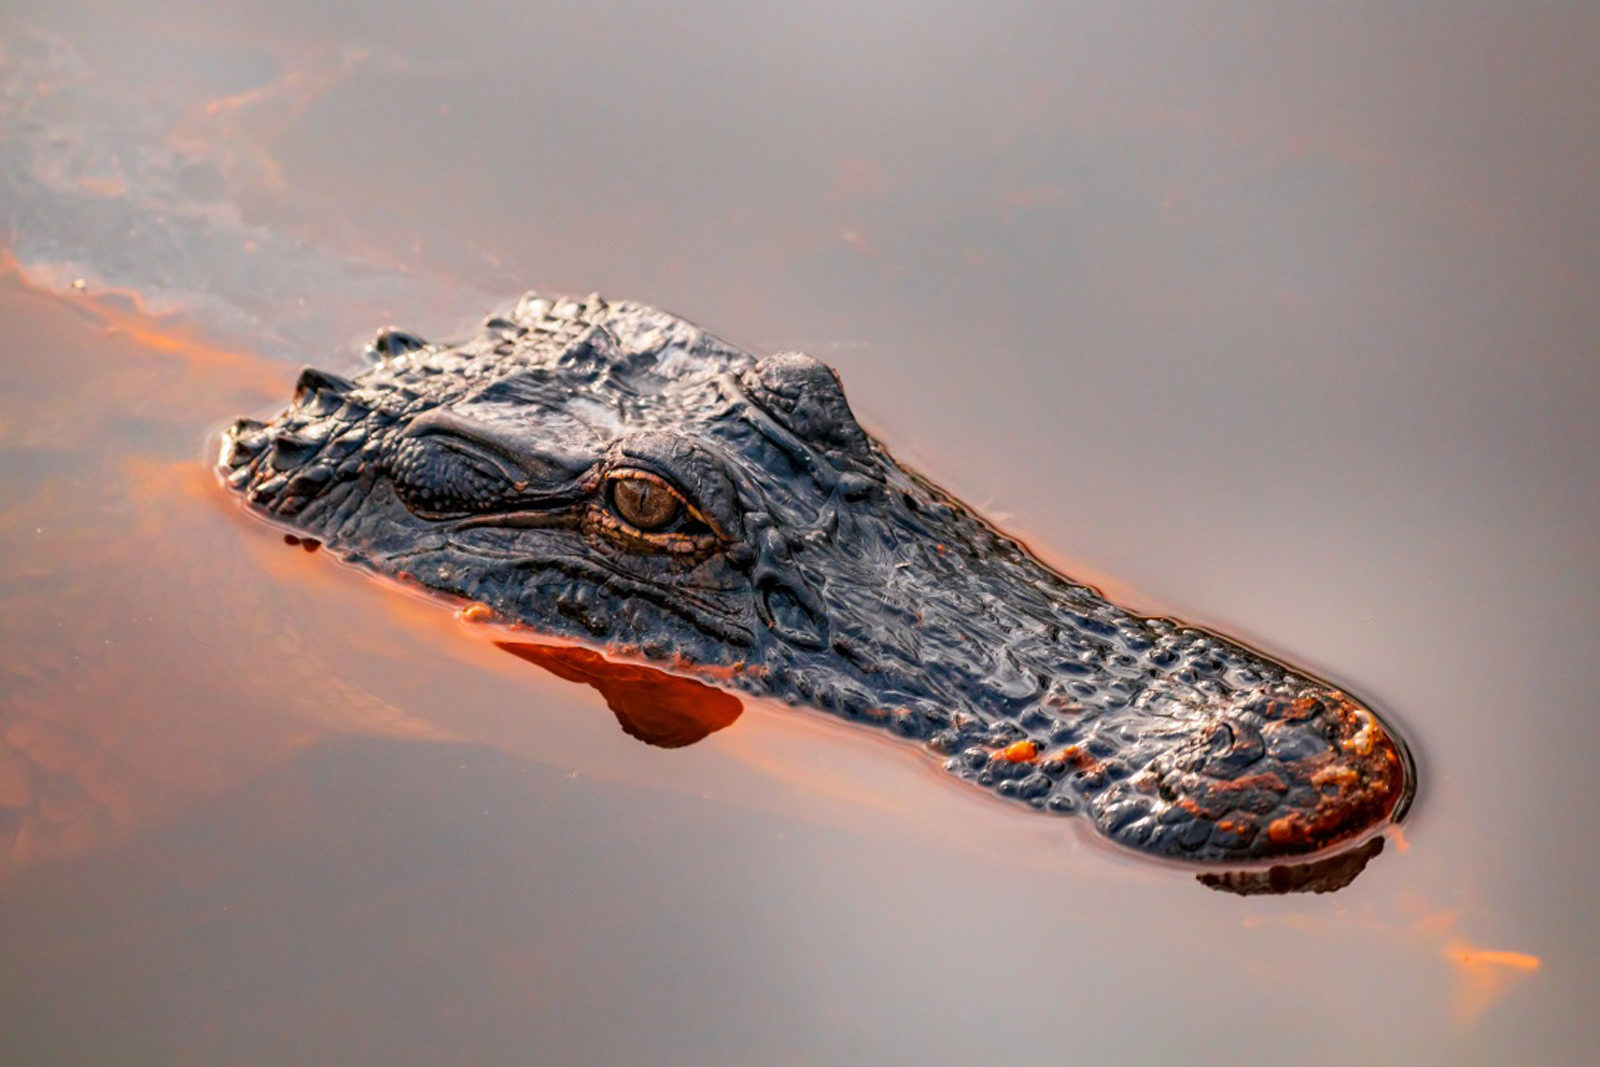 Alligator at Dauphin Island, AL